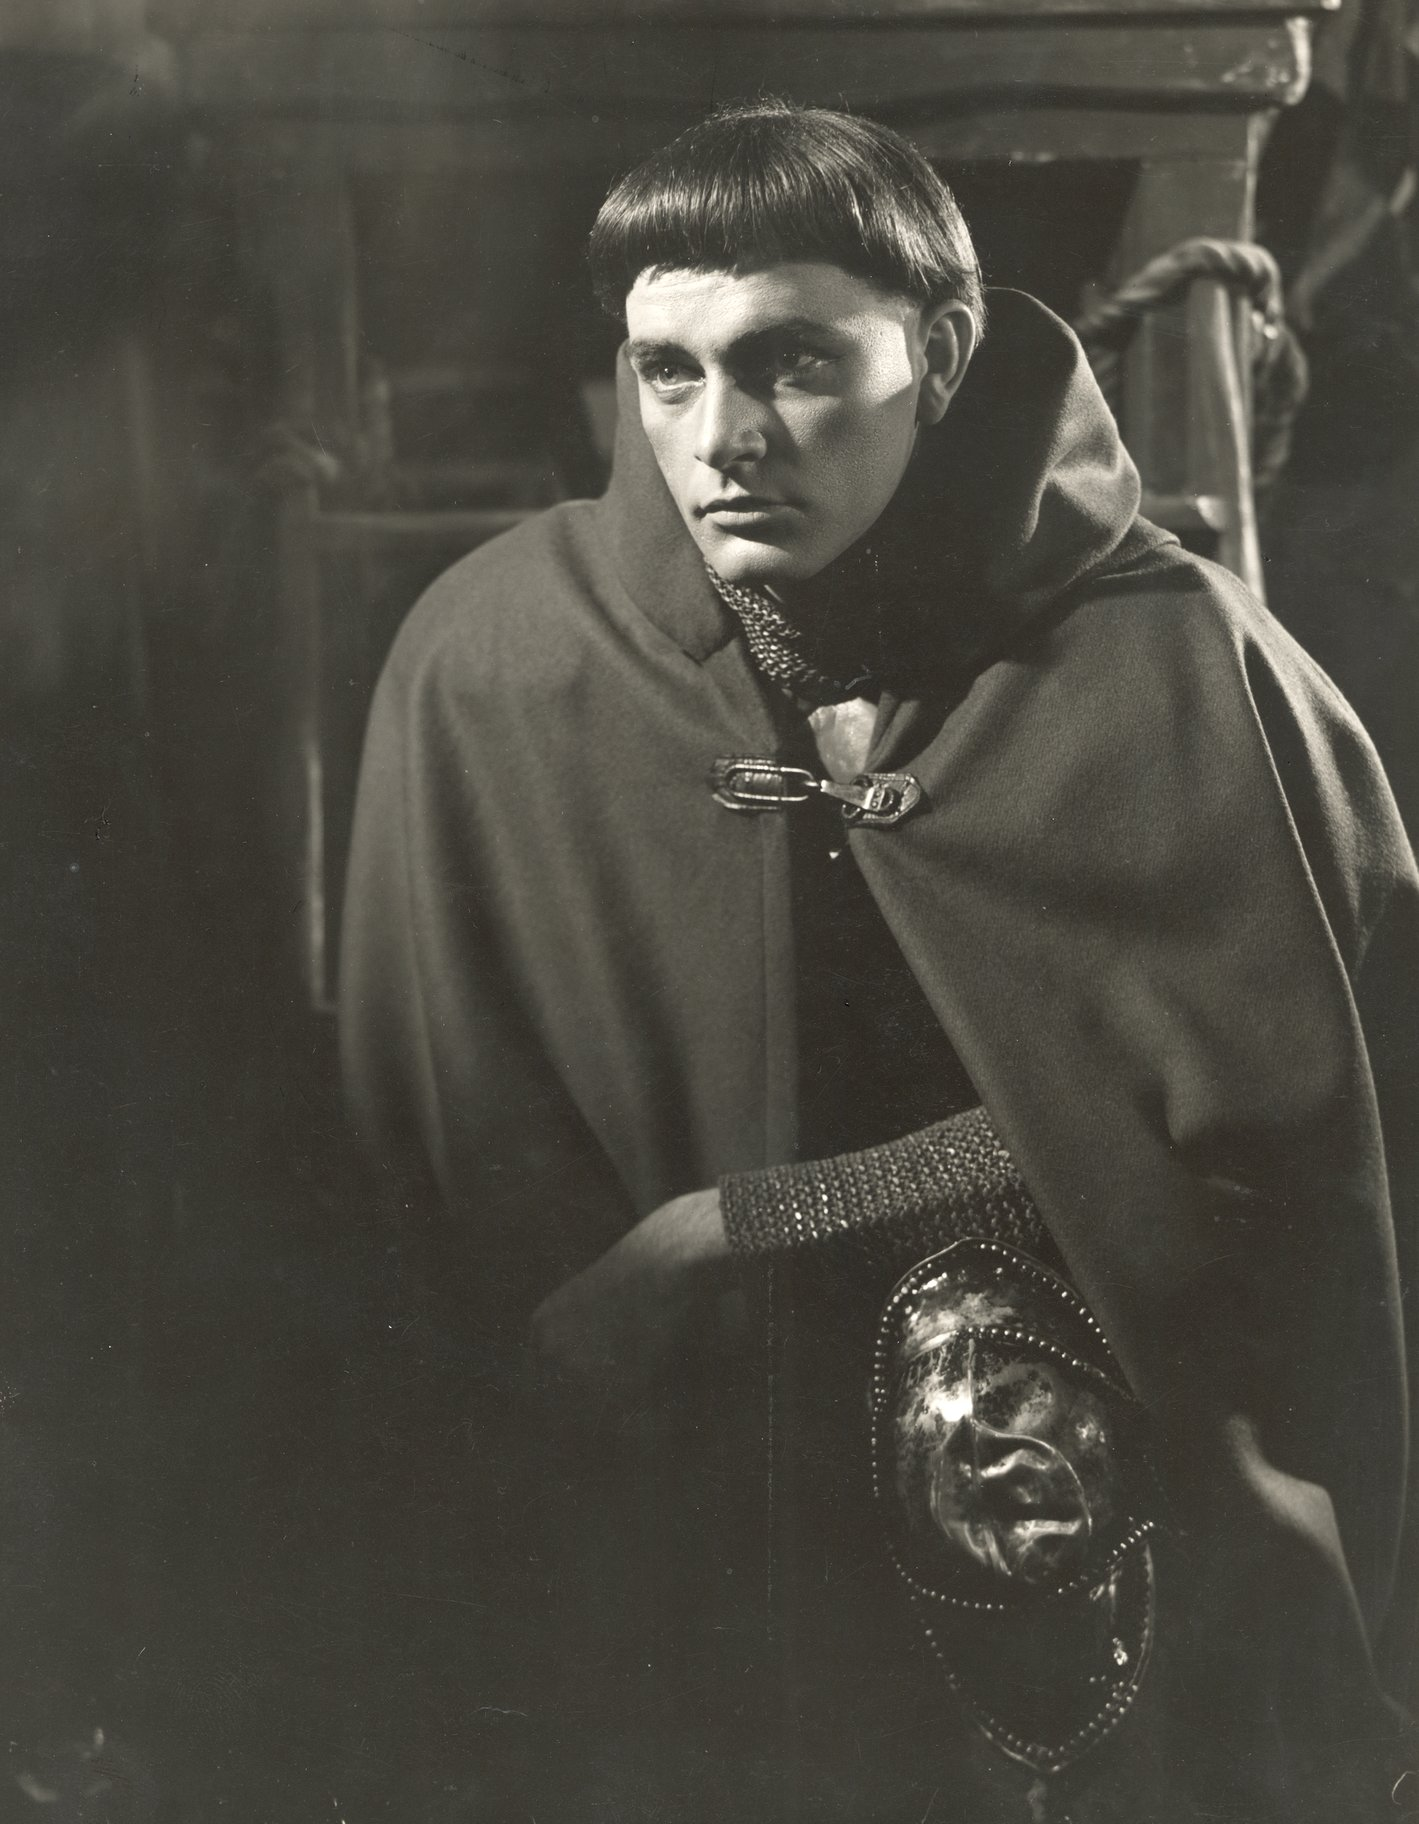 Richard Burton as Henry in disguise, hunched down and wearing a dark cloak, in the 1951 production of Henry V